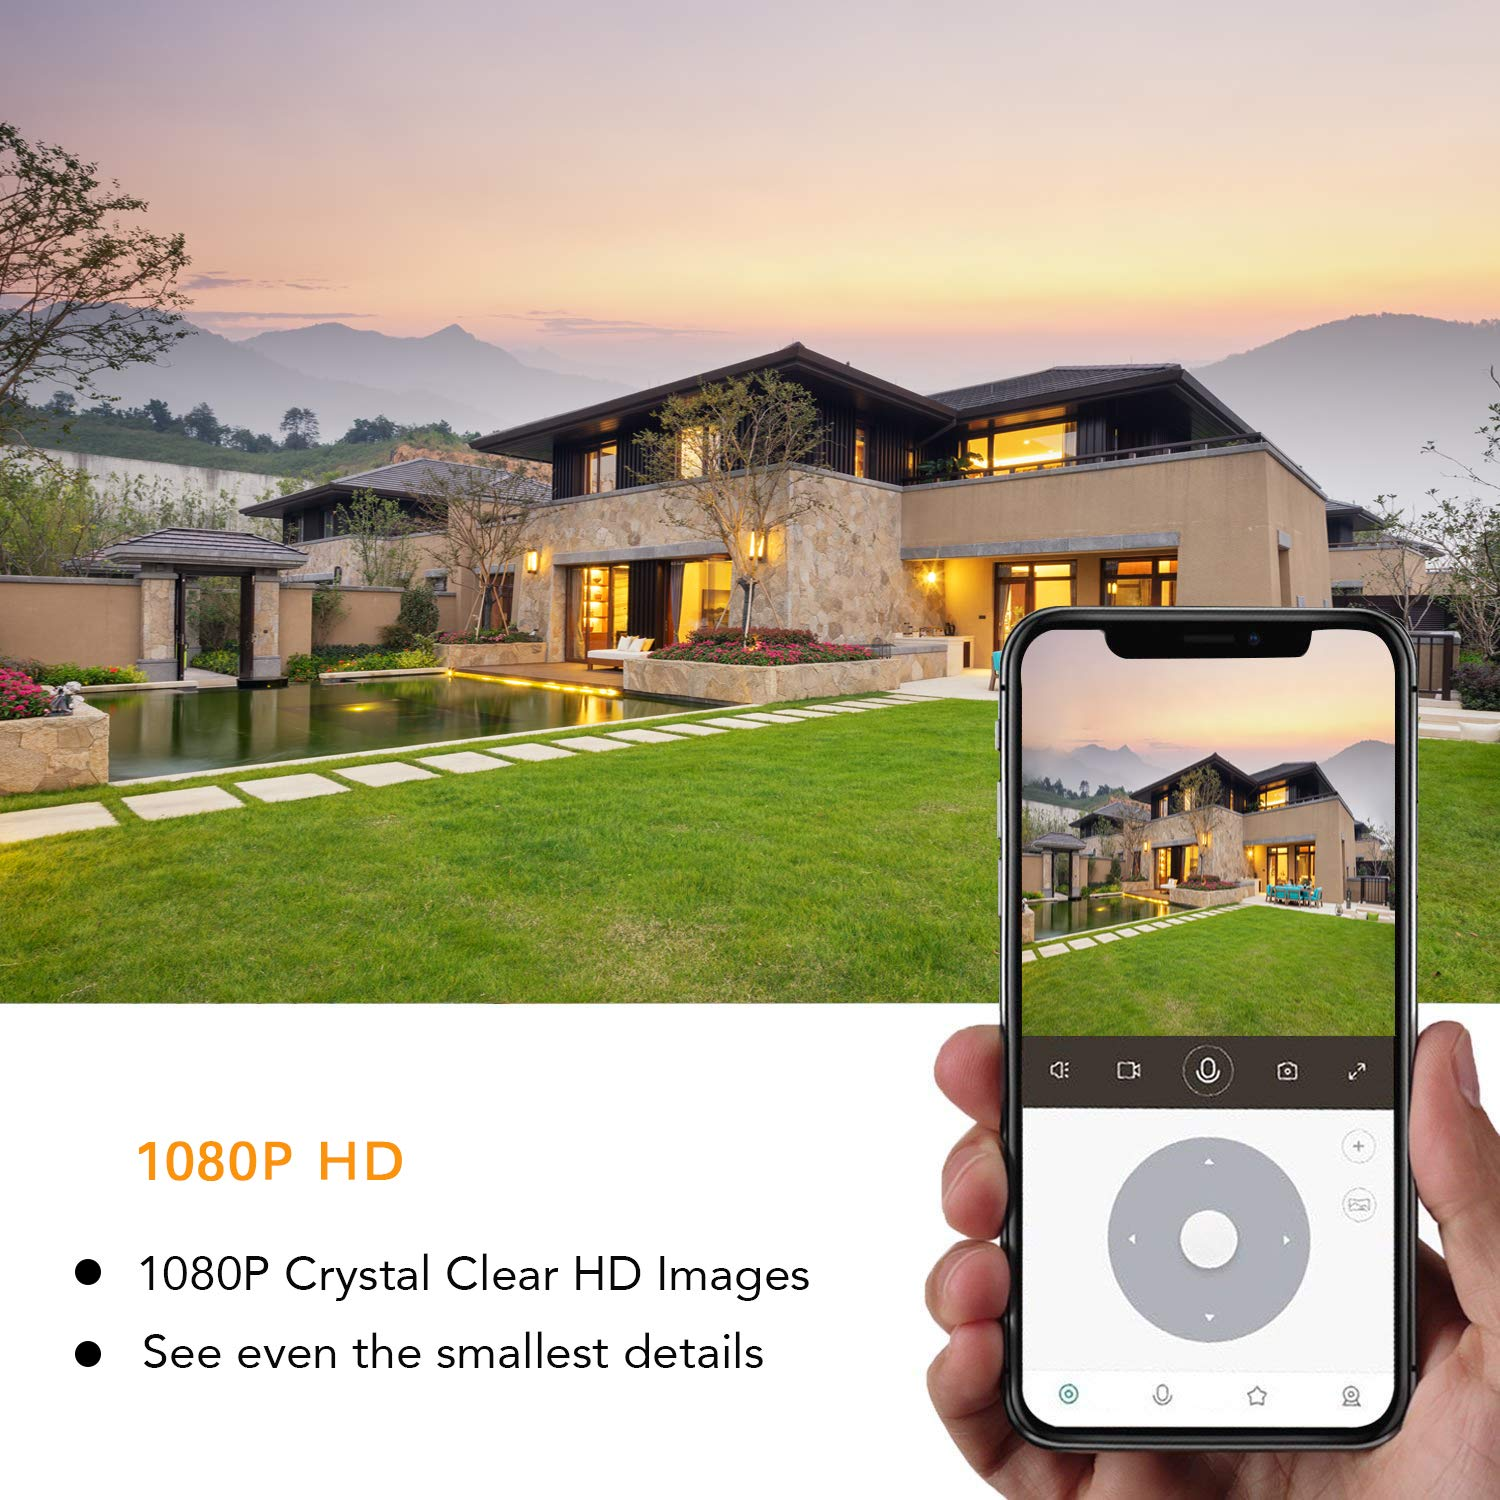 Outdoor Security Camera, WiYA 1080P HD Outdoor Surveillance Cameras with Dual Light Night Vision, Motion Detection, Two-Way Audio, IP66 Waterproof, Wired or WiFi Outdoor Camera